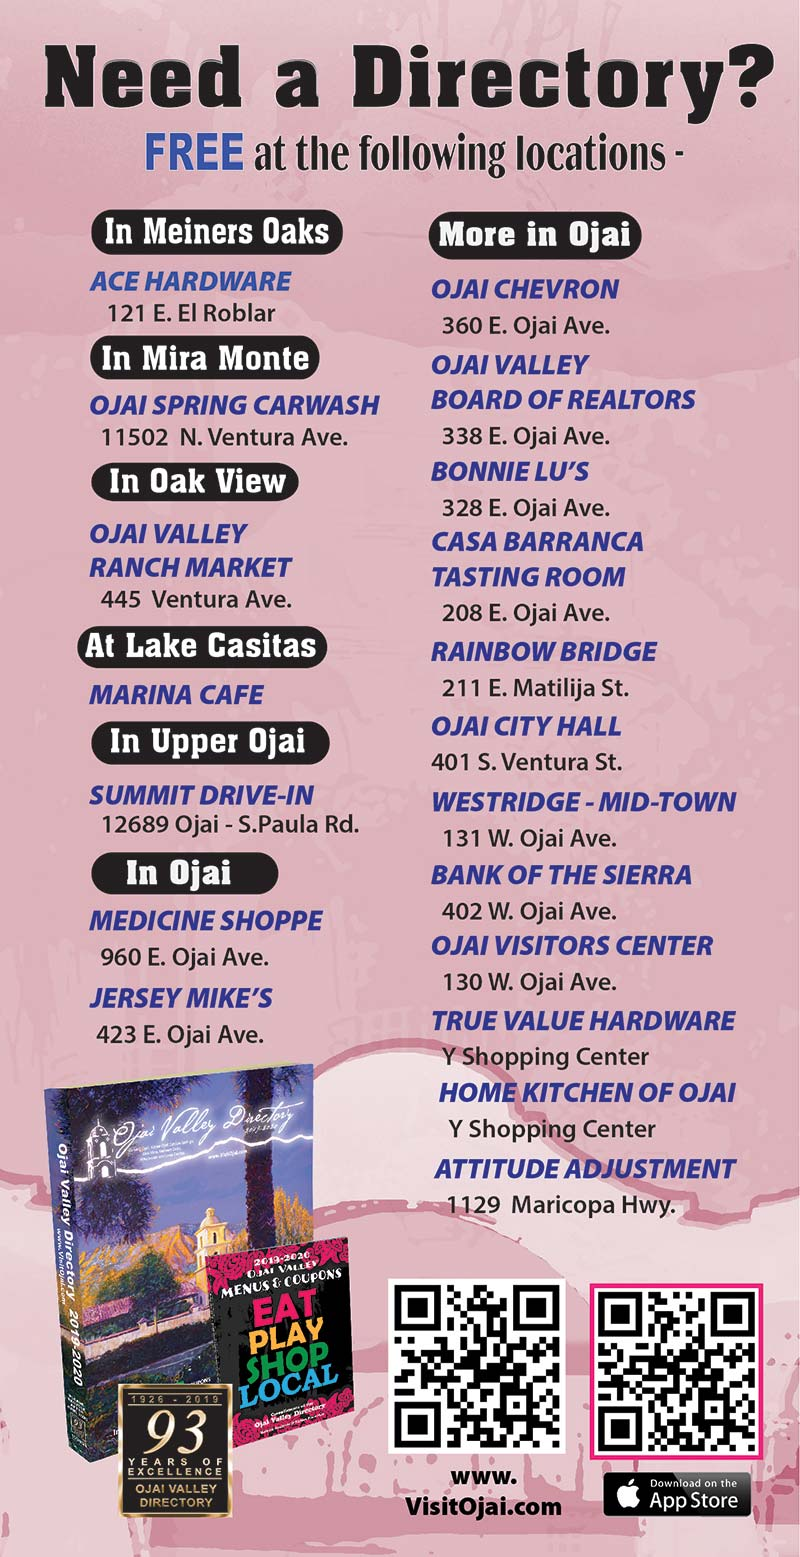 NEED A DIRECTORY? - Ojai Valley Directory